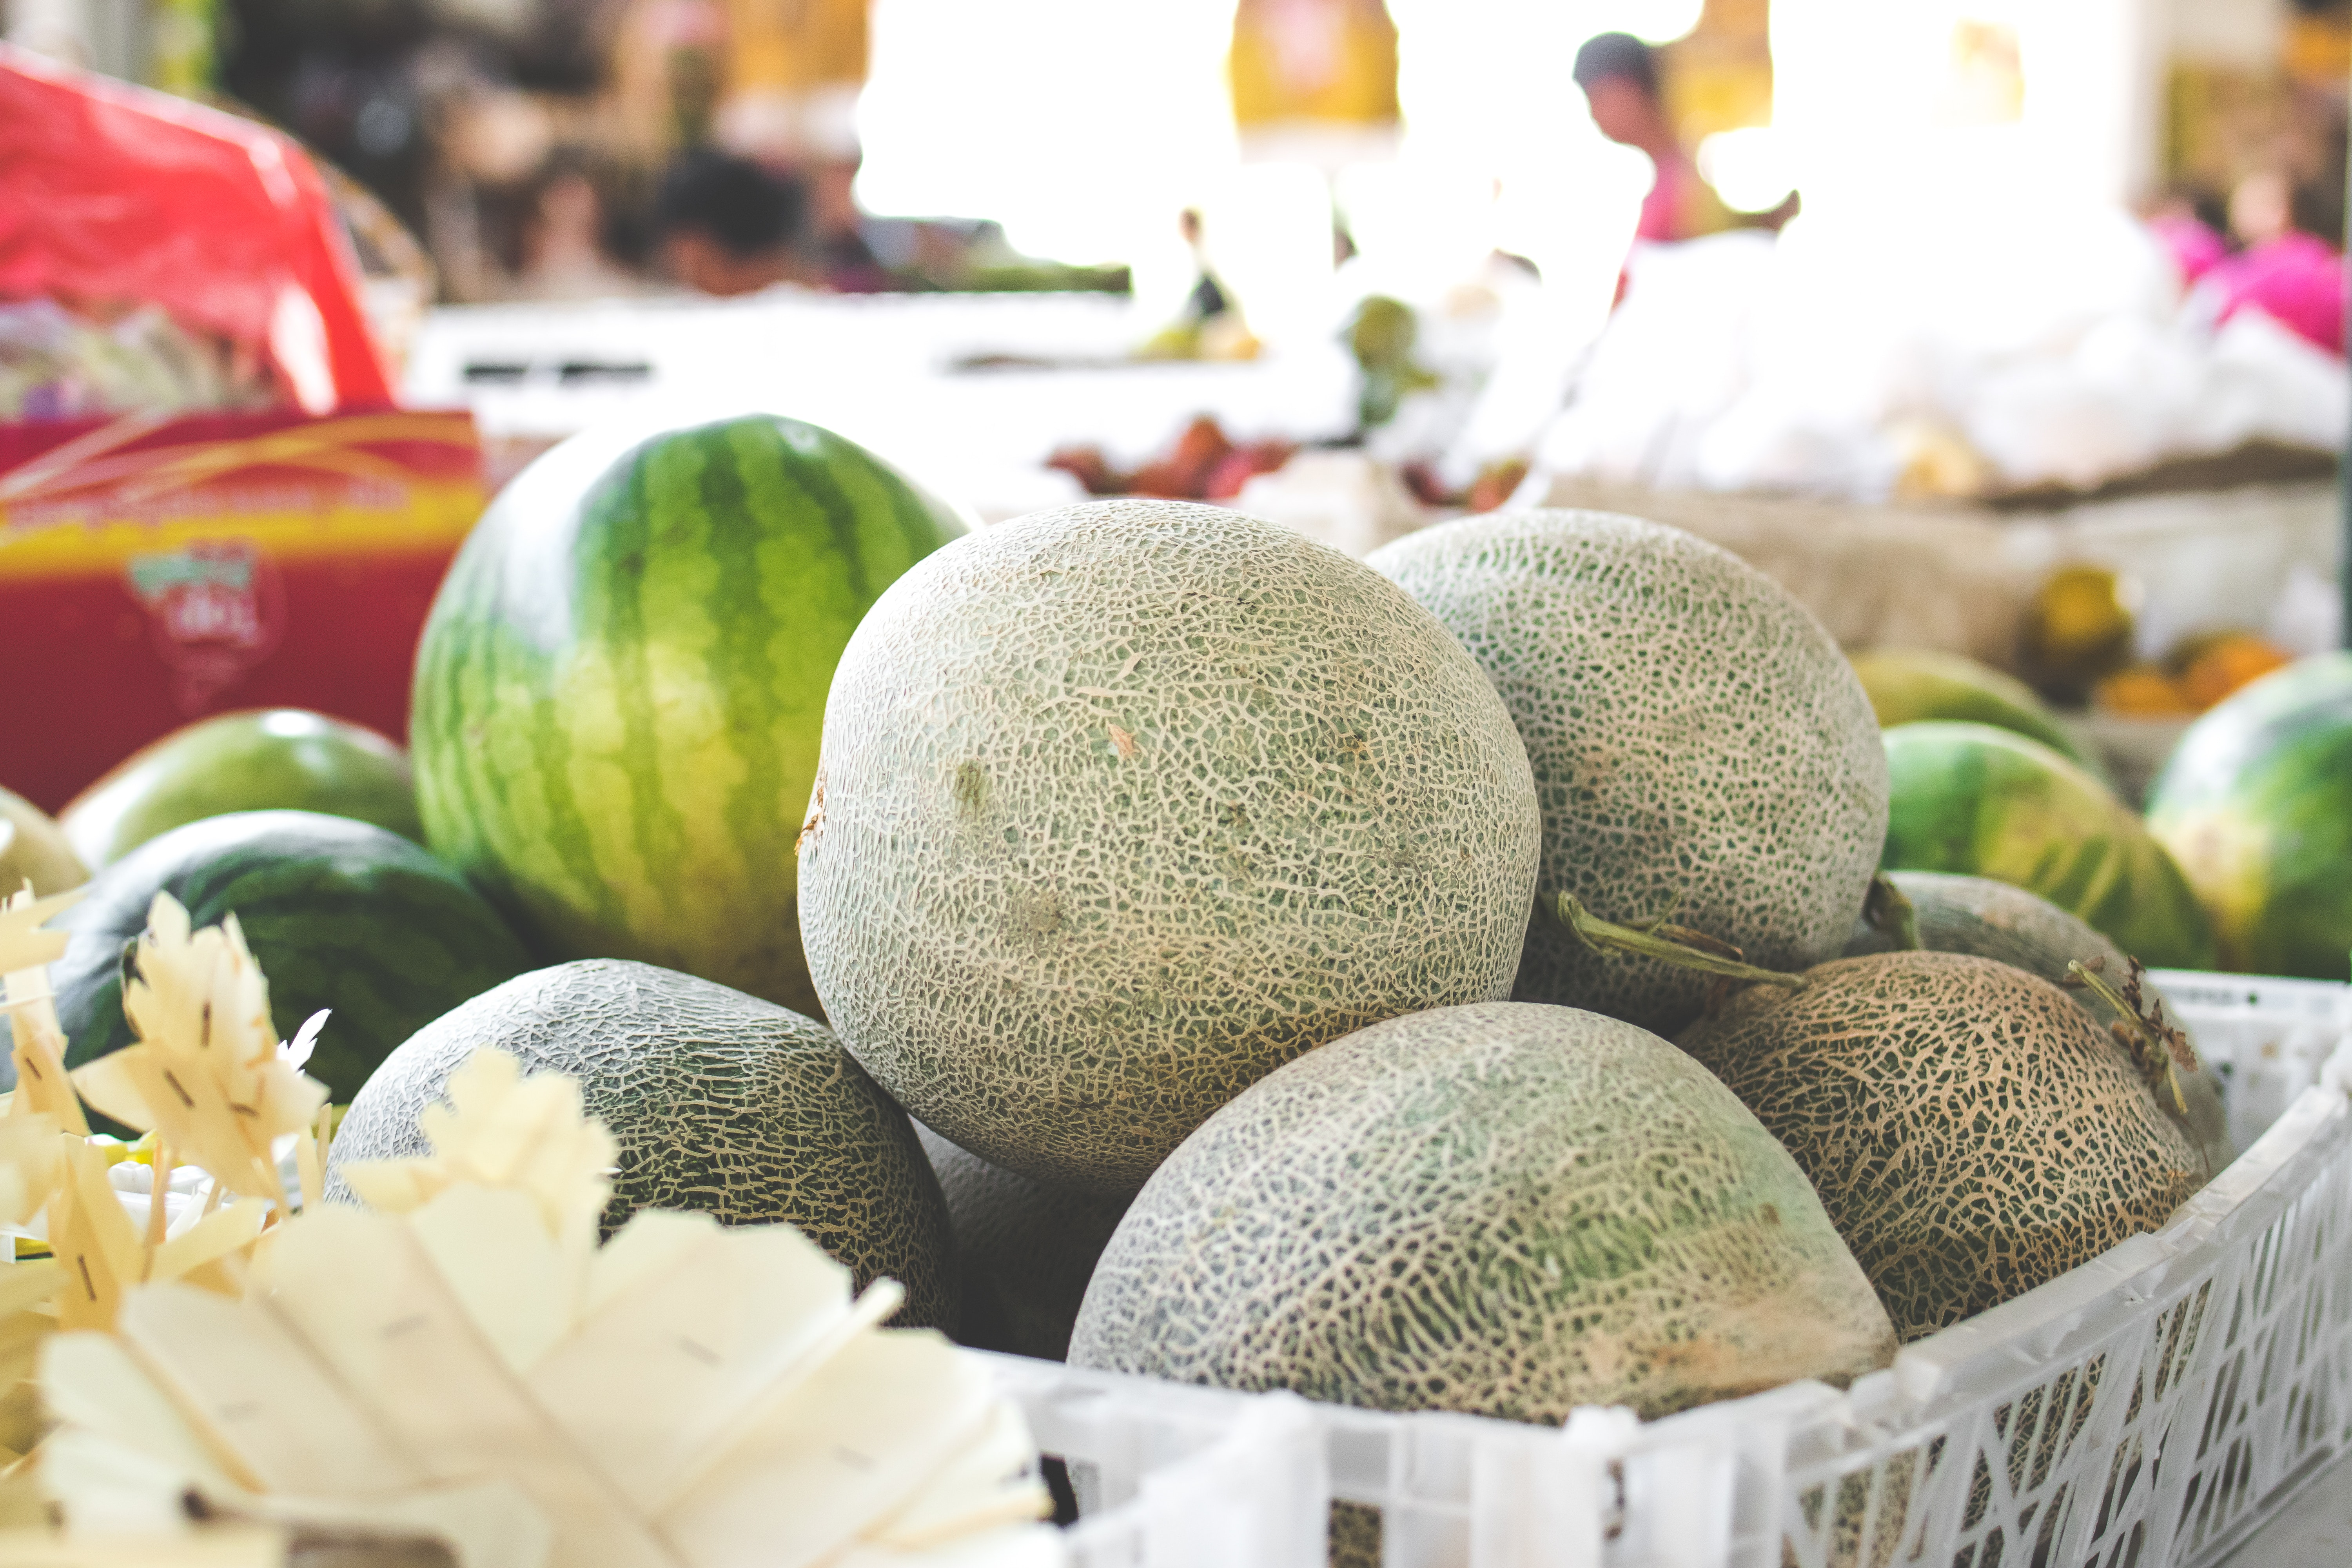 8 Small Melons Packed with Gigantic Flavor